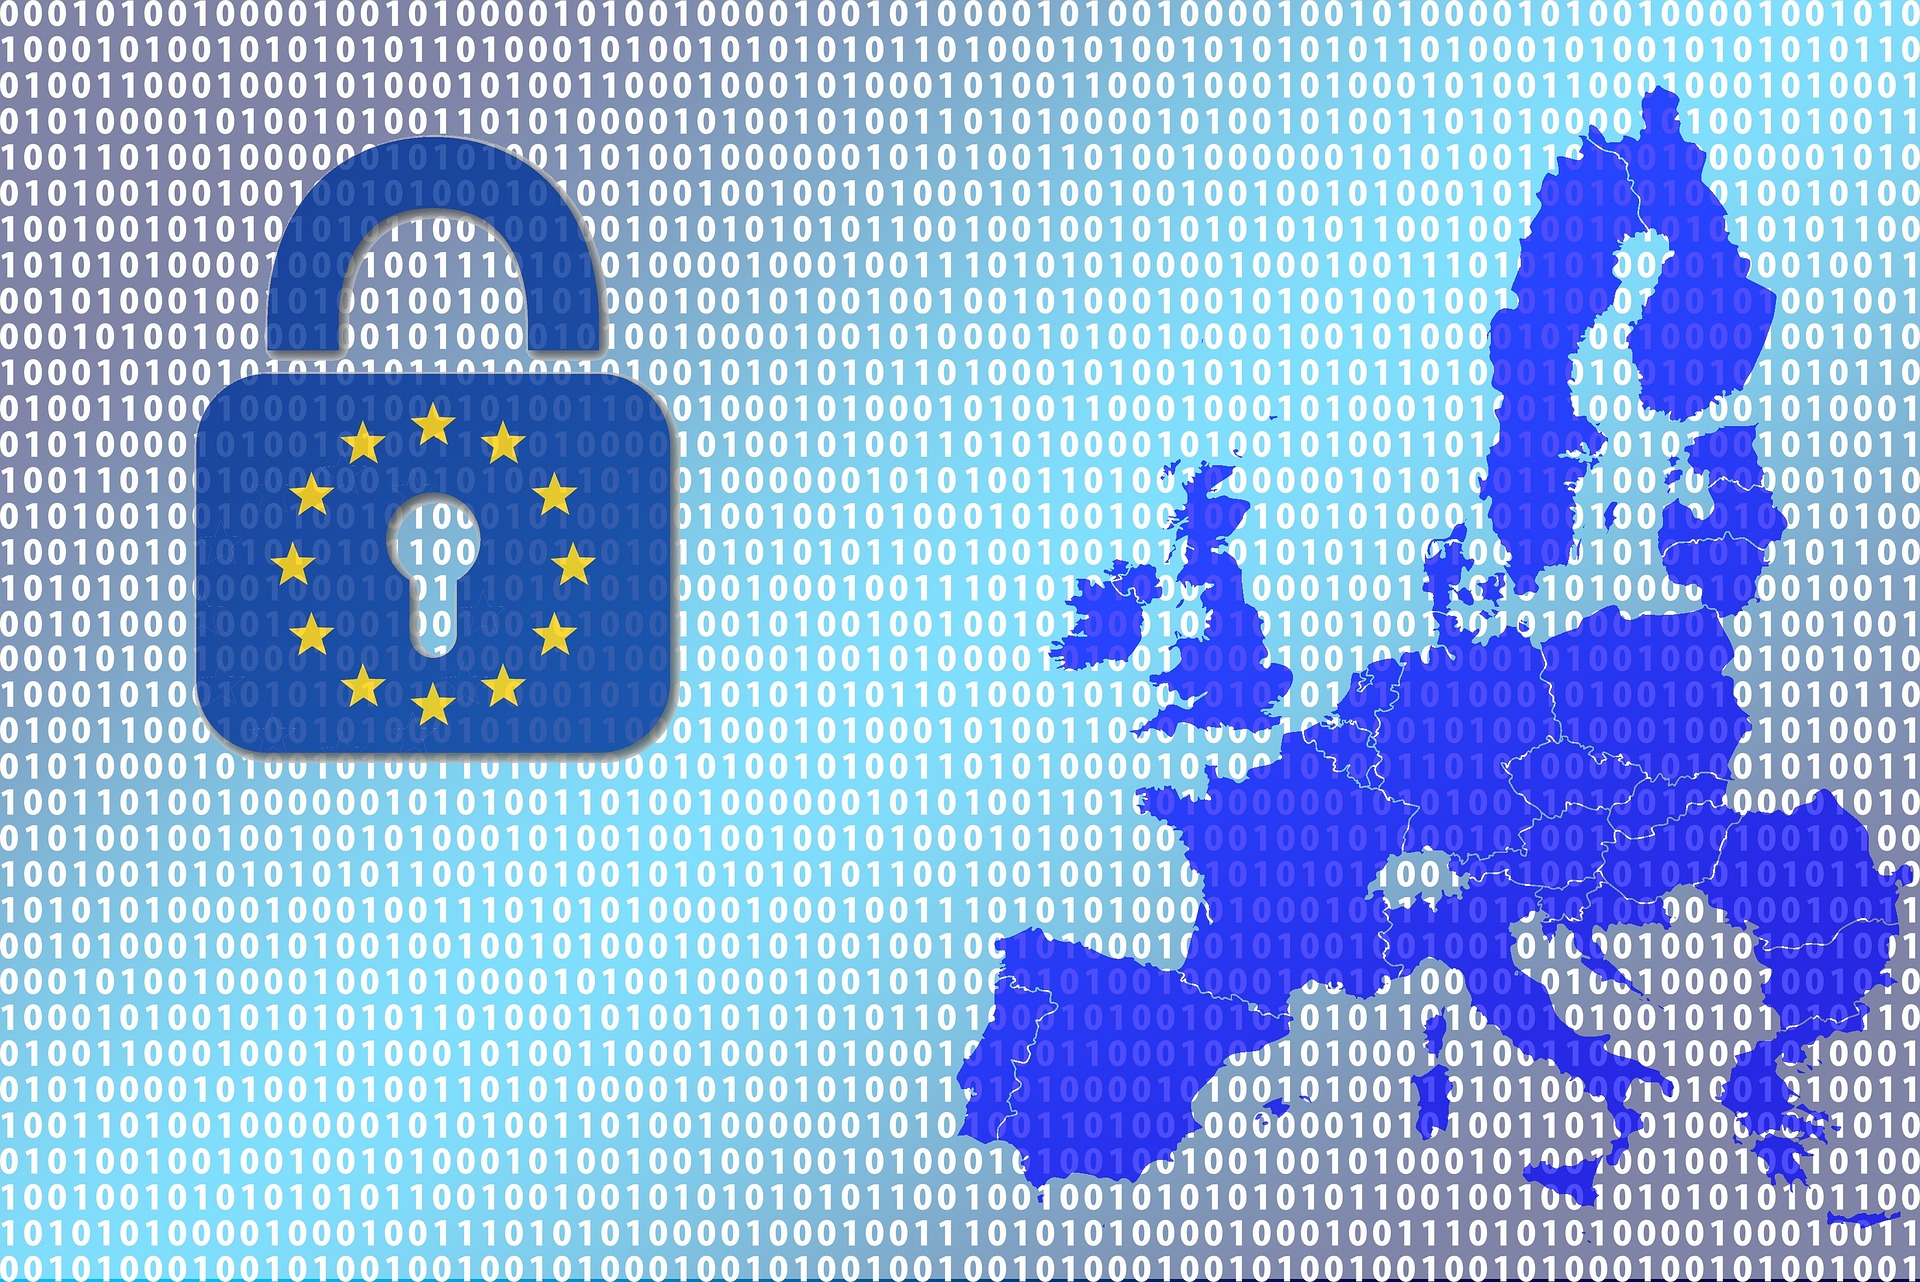 Google has to pay its 50 million Euro GDPR Fine